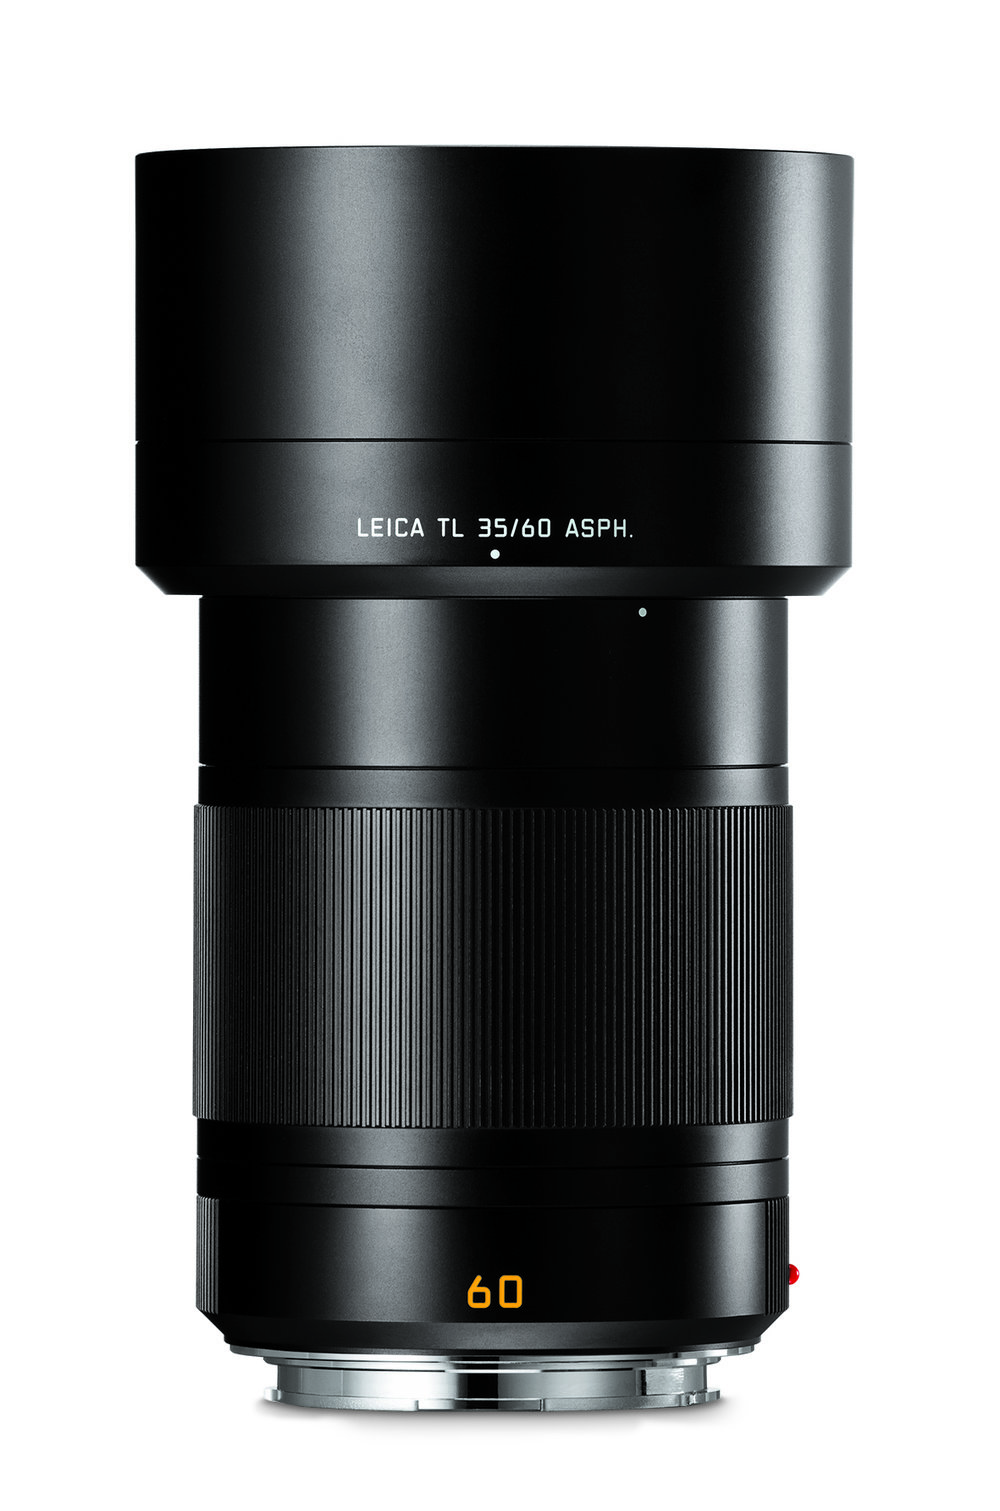 Peter Karbe's second most favoured TL lens is the the other one made in Germany, the 60mm Macro. Both this and the 35mm Summilux are relatively heavy lenses and remind us of the German-made SL optics in both appearance and feel